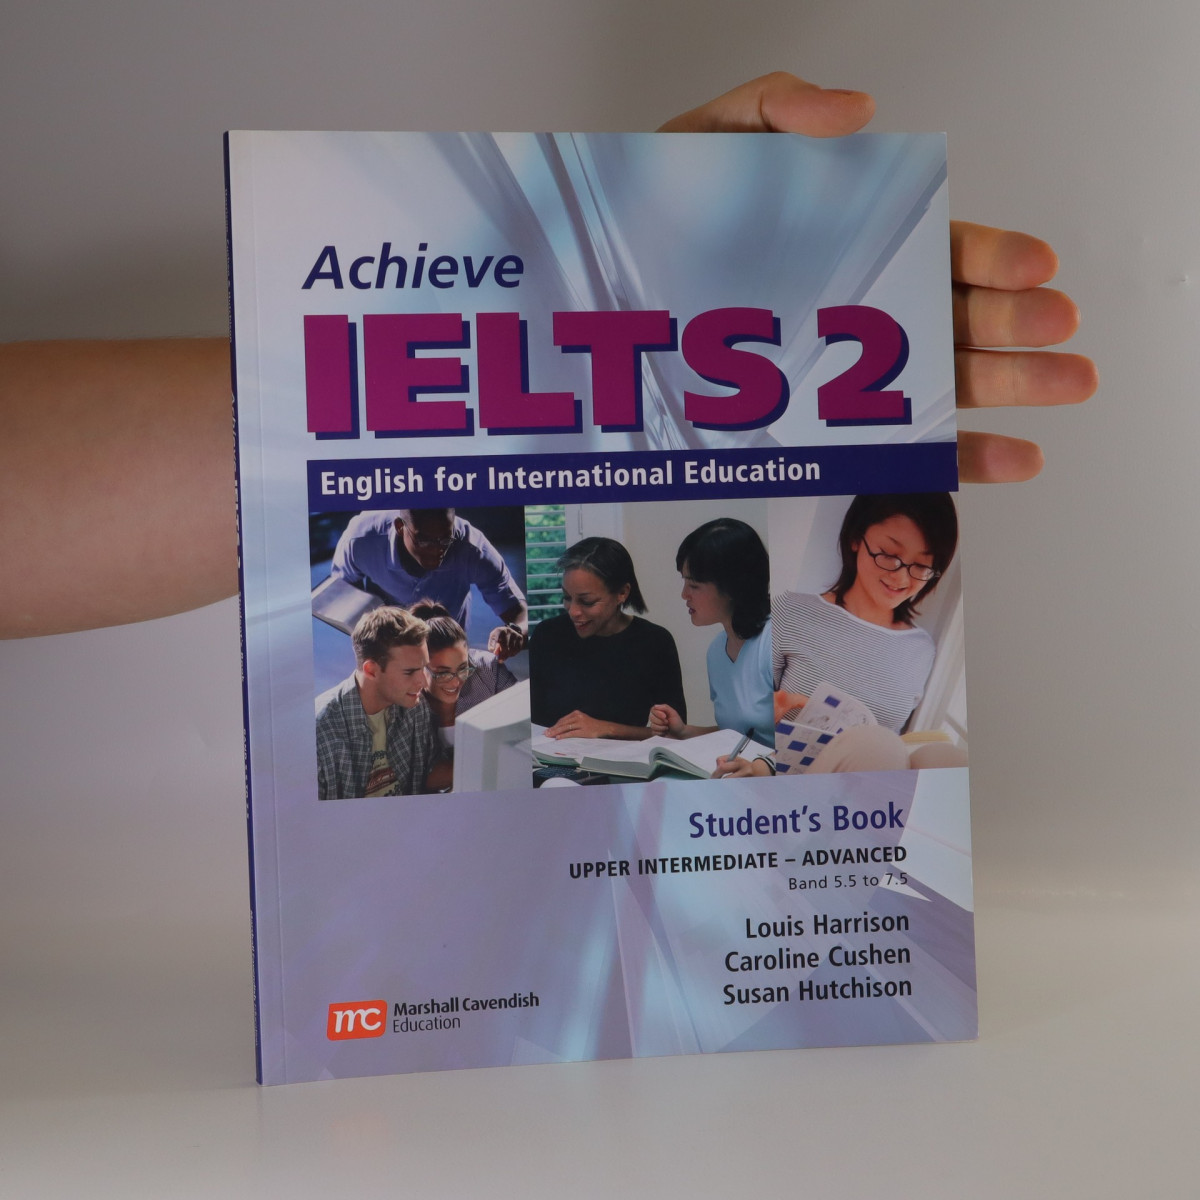 antikvární kniha Achieve IELTS 2. English for international education. Upper intermediate-advanced (Band 5.5 to 7.5), Student's book, 2008